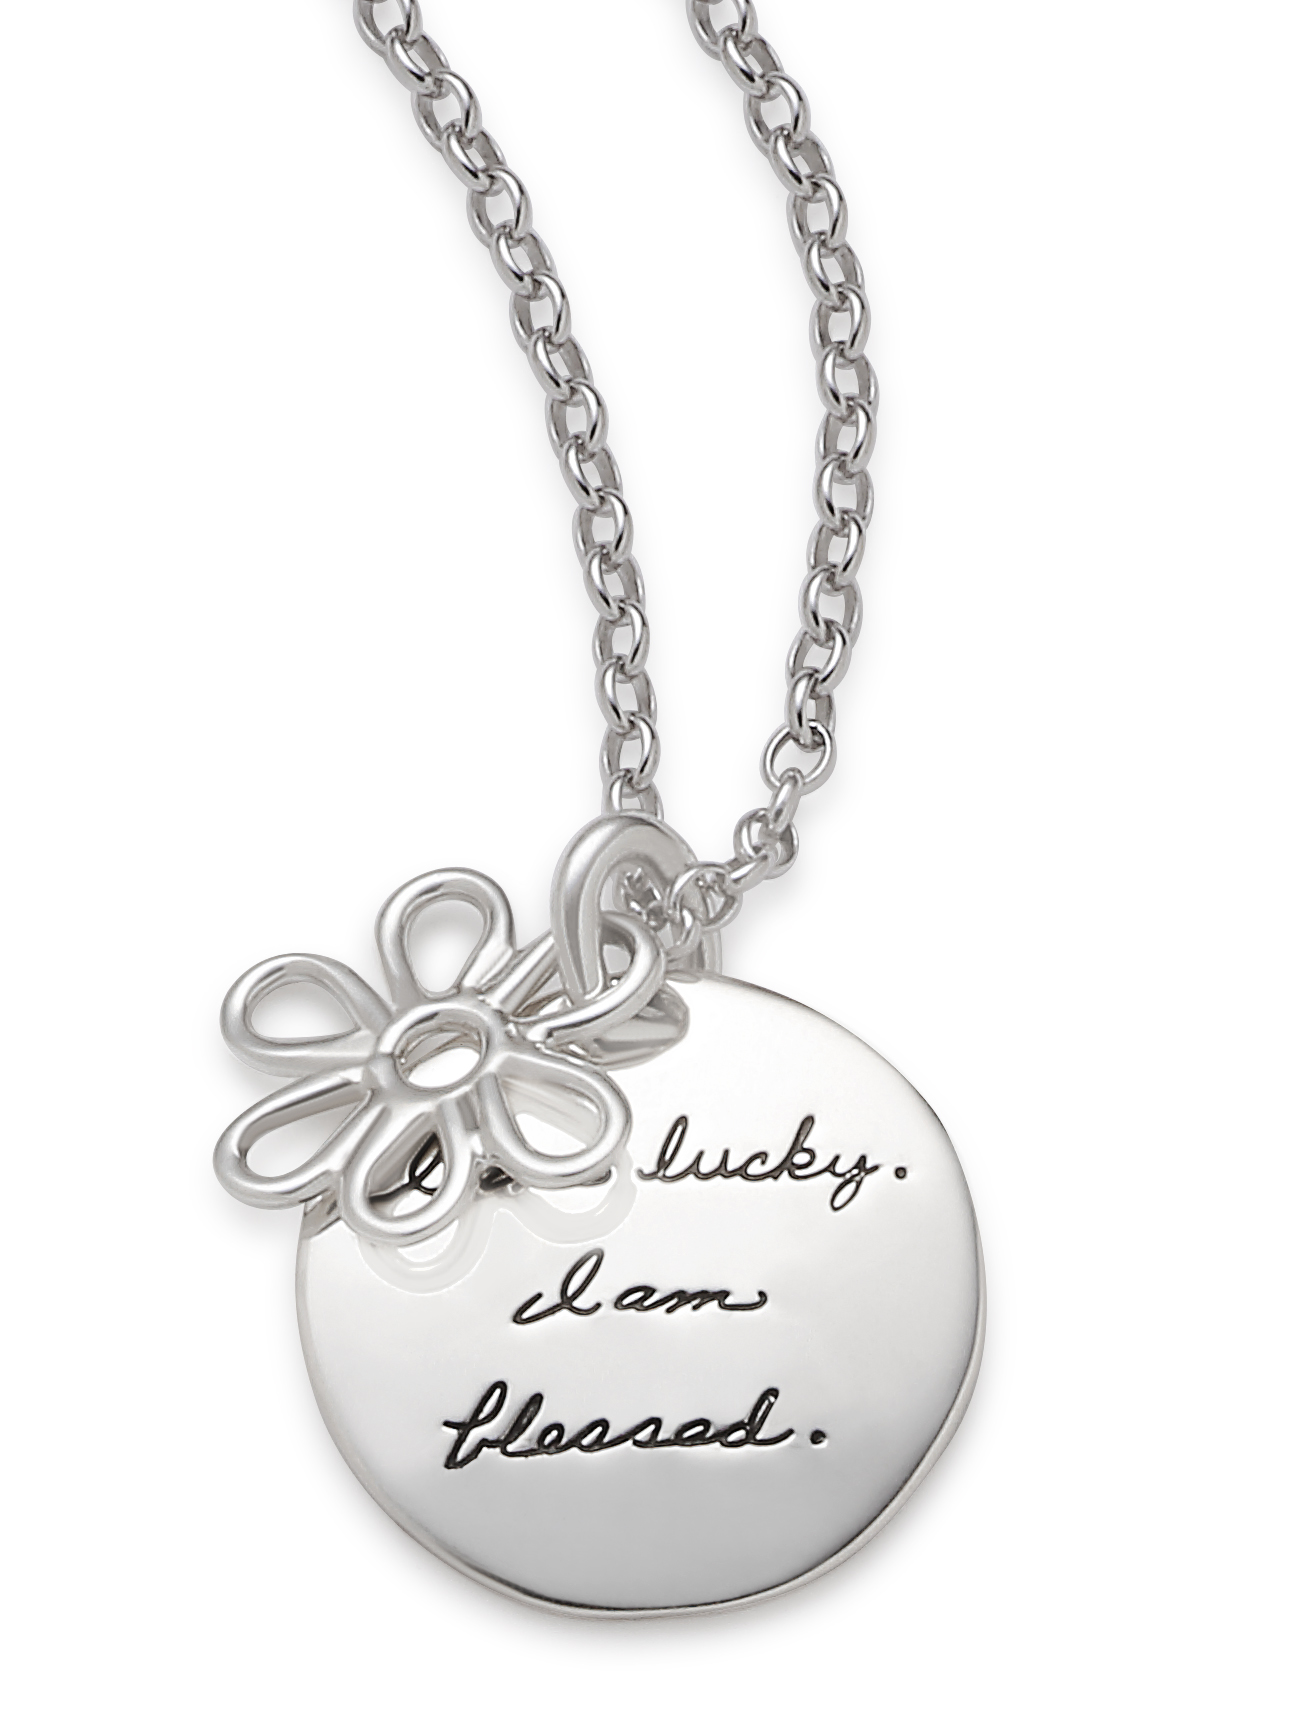 Inspirational circle pendant with a sterling wire hanging flower in front engraved quote reads: I am lucky. I am blessed.